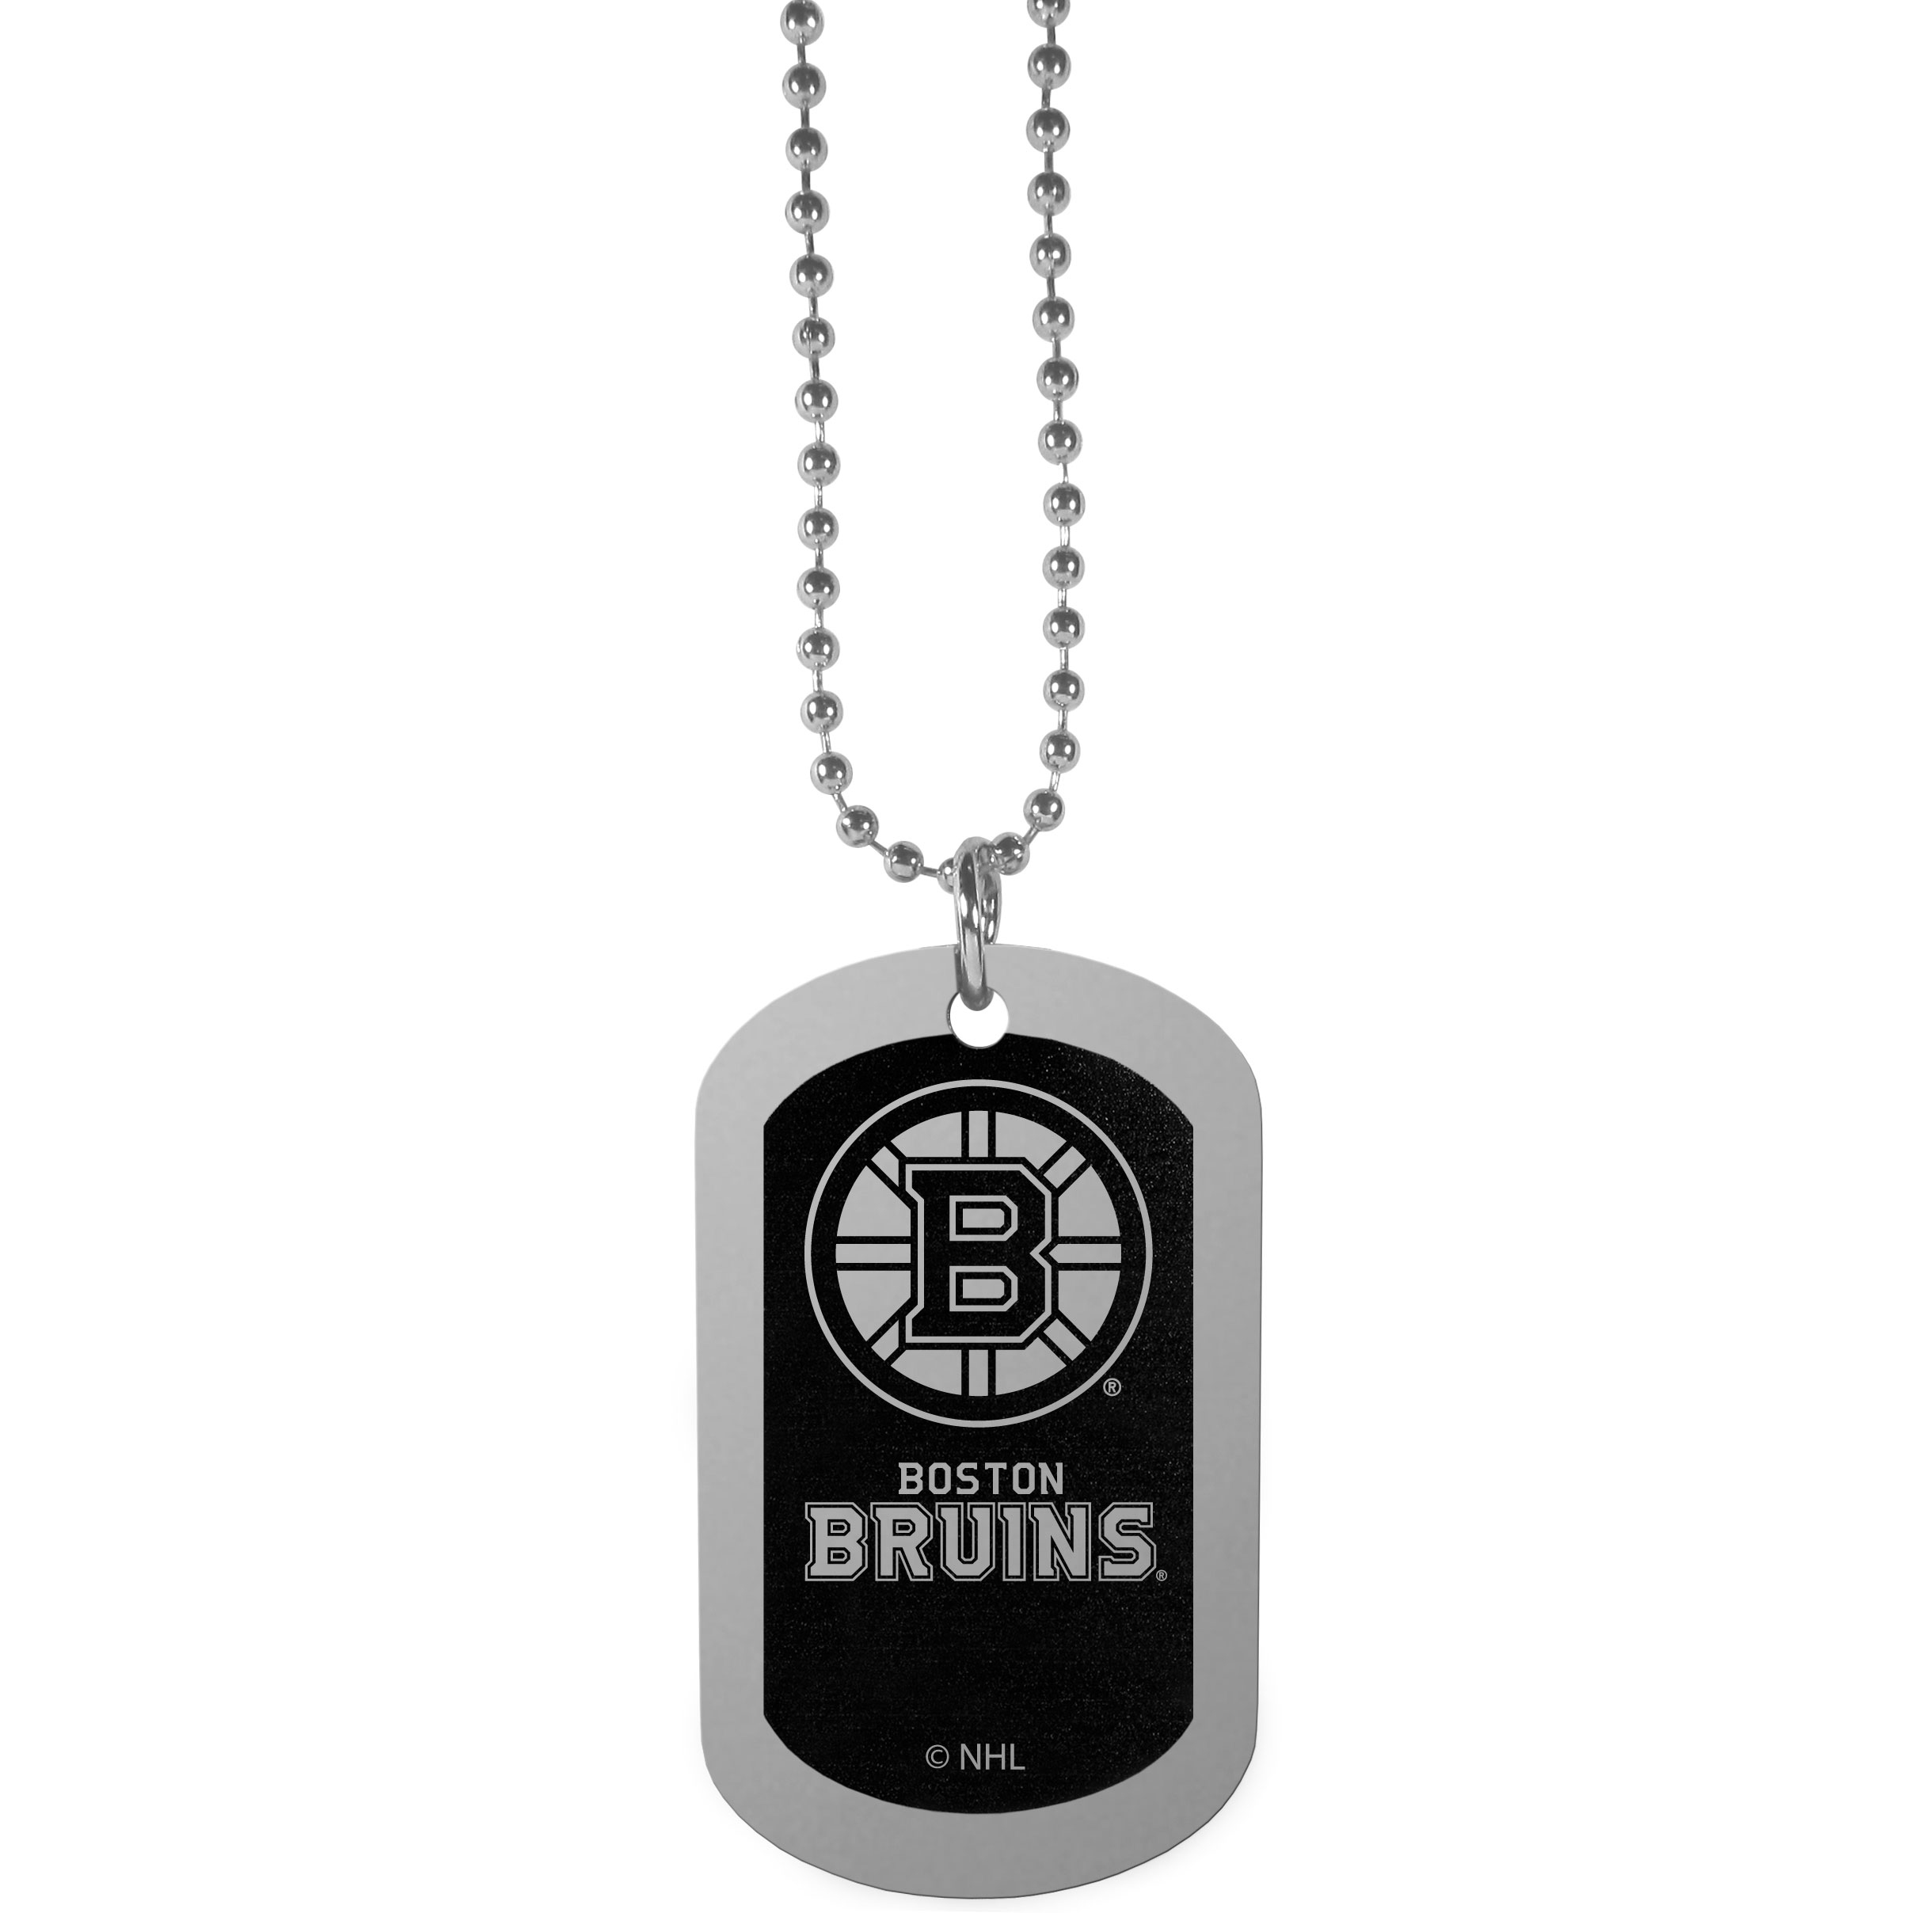 Boston Bruins® Chrome Tag Necklace - Dog tag necklaces are a fashion statement that is here to stay. The sporty version of the classic tag features a black printed over a high polish tag to create a bold and sporty look. The tag comes on a 26 inch ball chain with a ball and joint clasp. Any Boston Bruins® would be proud to wear this attractive fashion accessory.